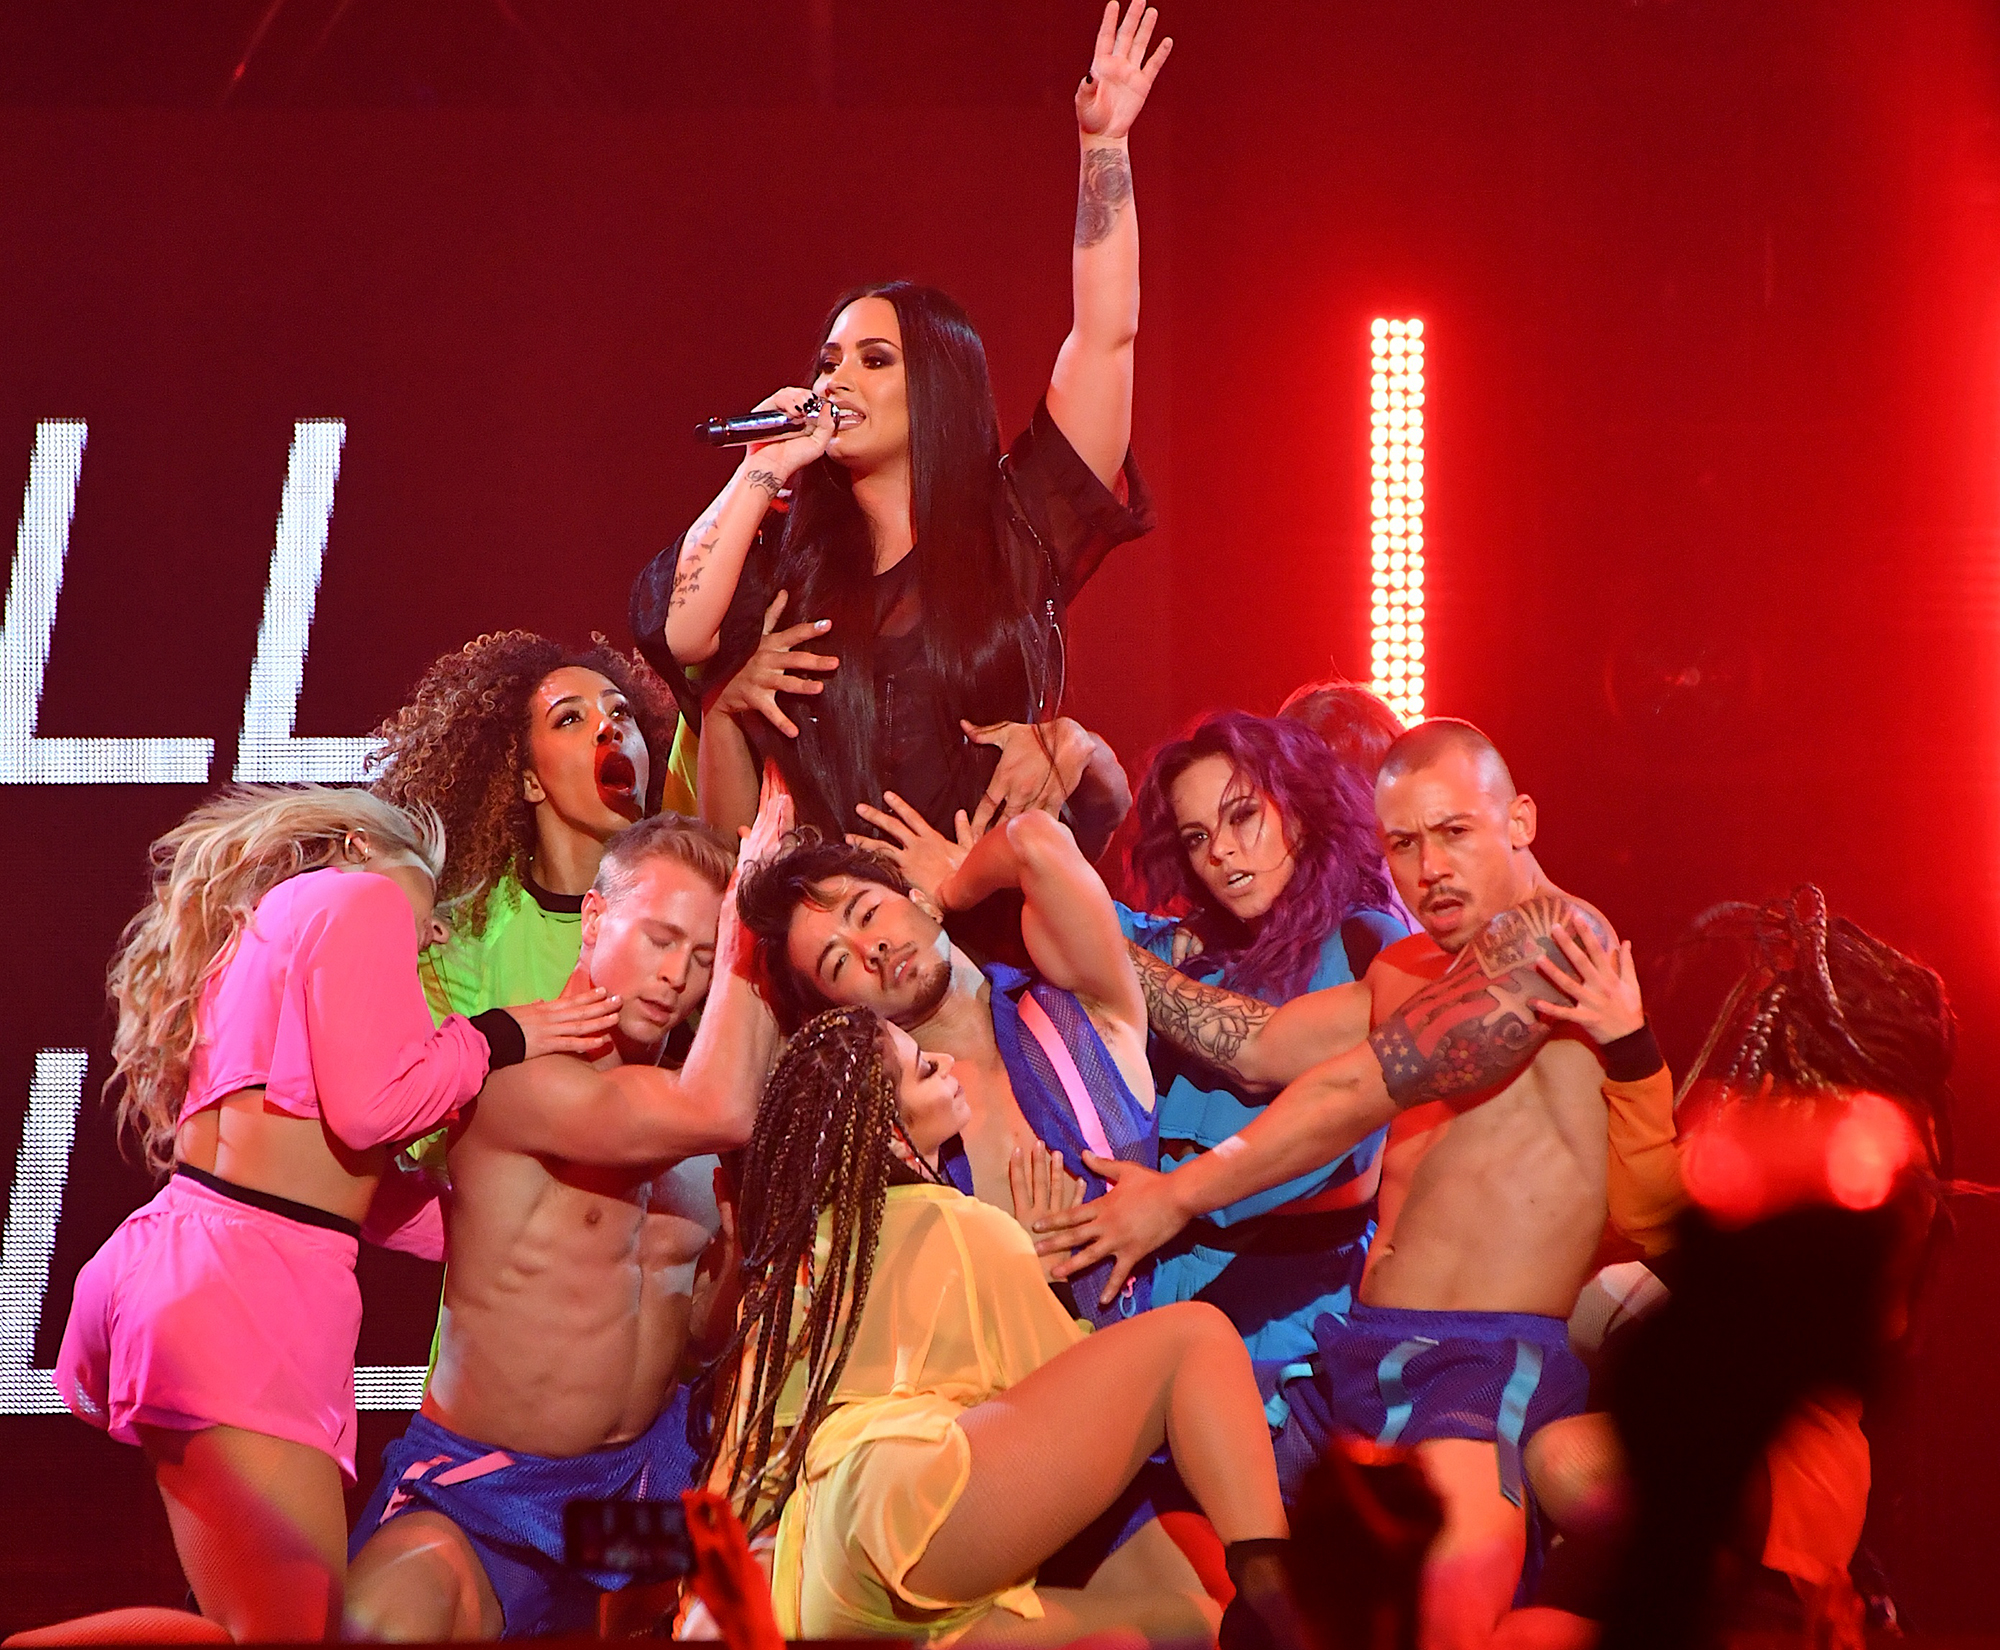 Demi Lovato, DJ Khaled and Kehlani In Concert At MGM Grand In Las Vegas